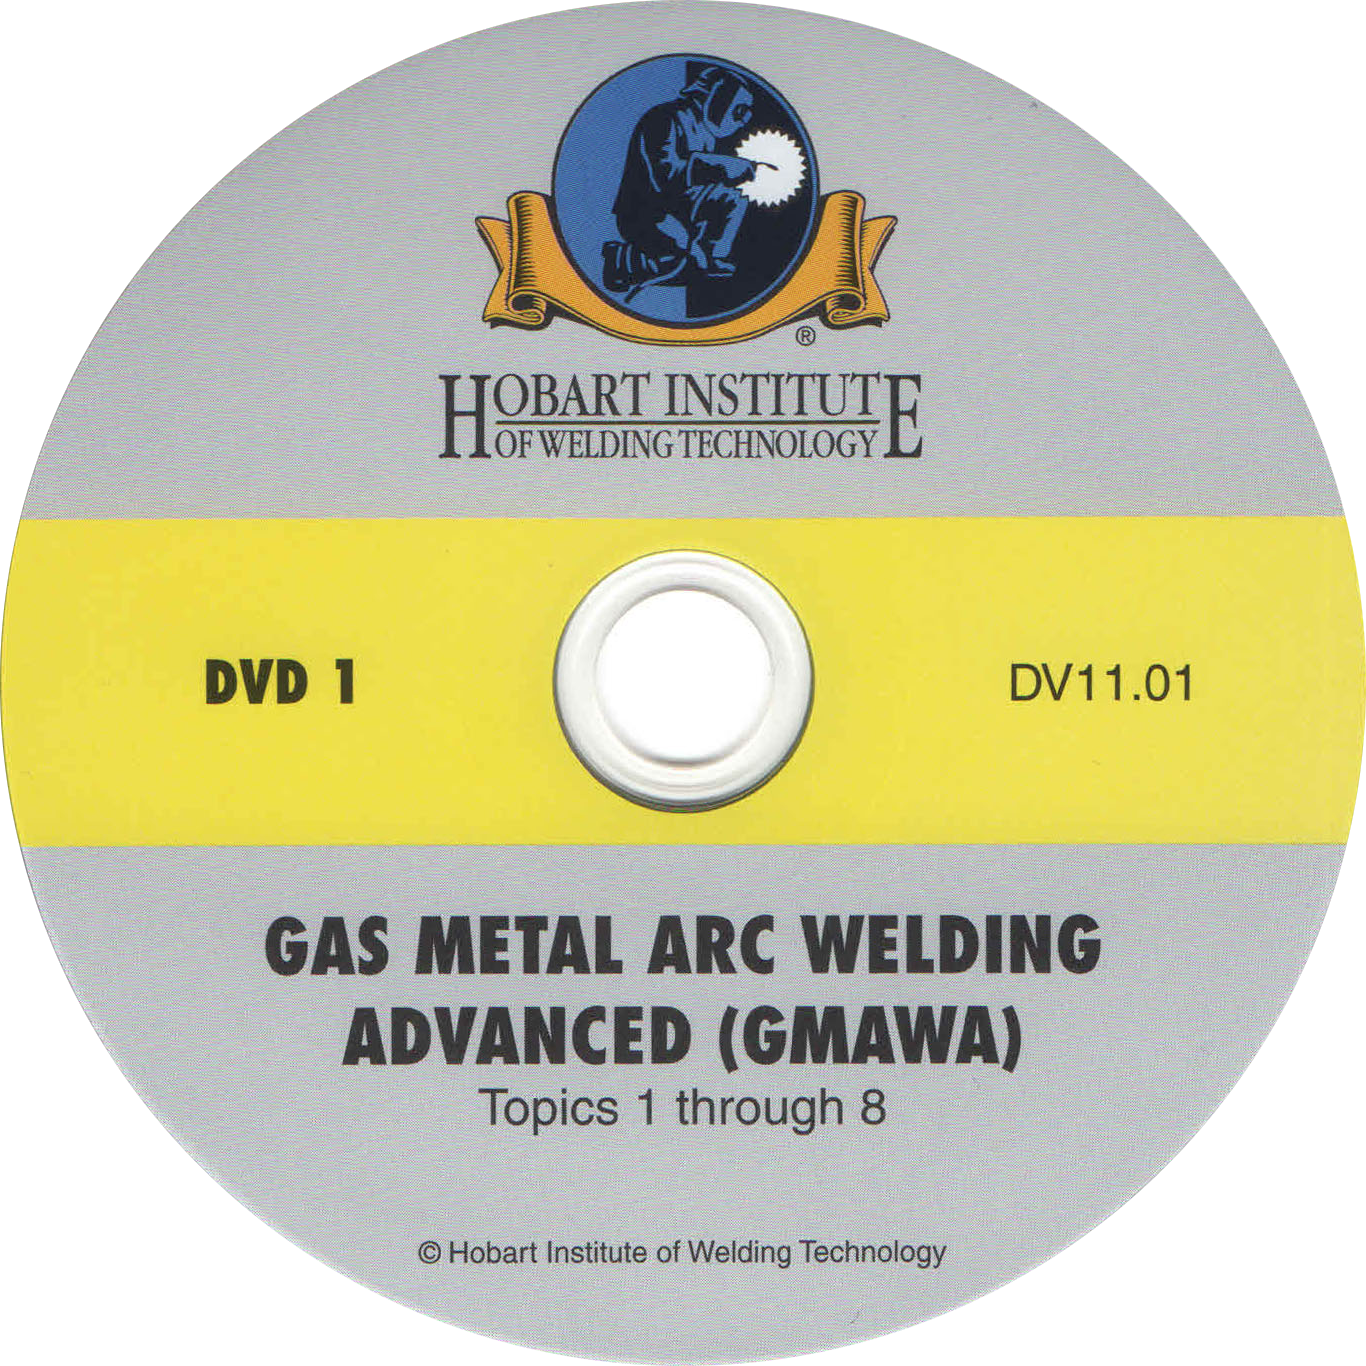 gas metal arc welding Gas metal arc welding pipe (gmawp) price: $ 99500  hobart institute of welding technology 400 trade square e troy, oh 45373 toll free:.